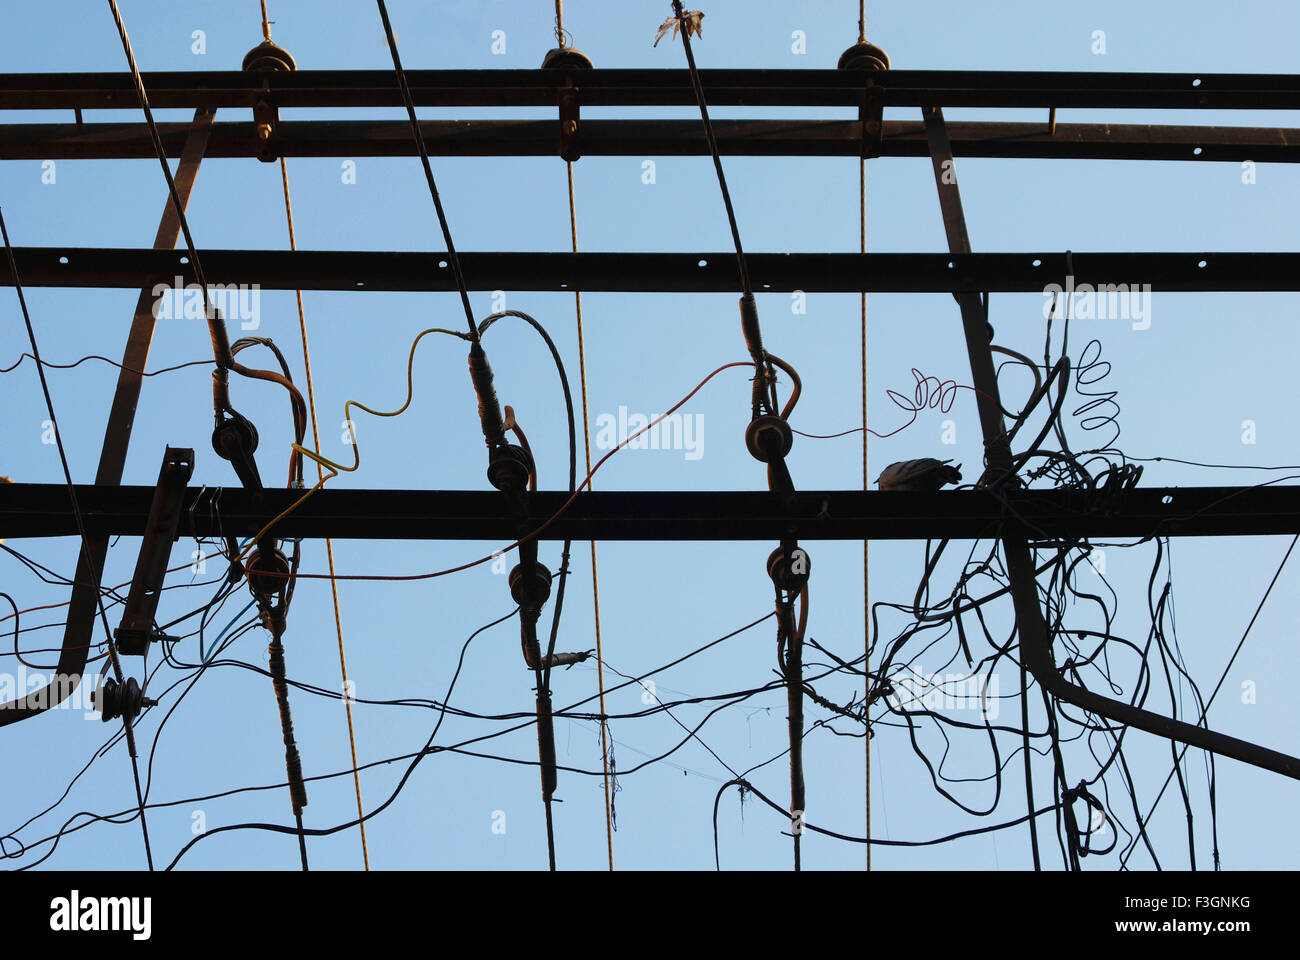 Jumble Of Wires Stock Photos & Jumble Of Wires Stock Images - Alamy